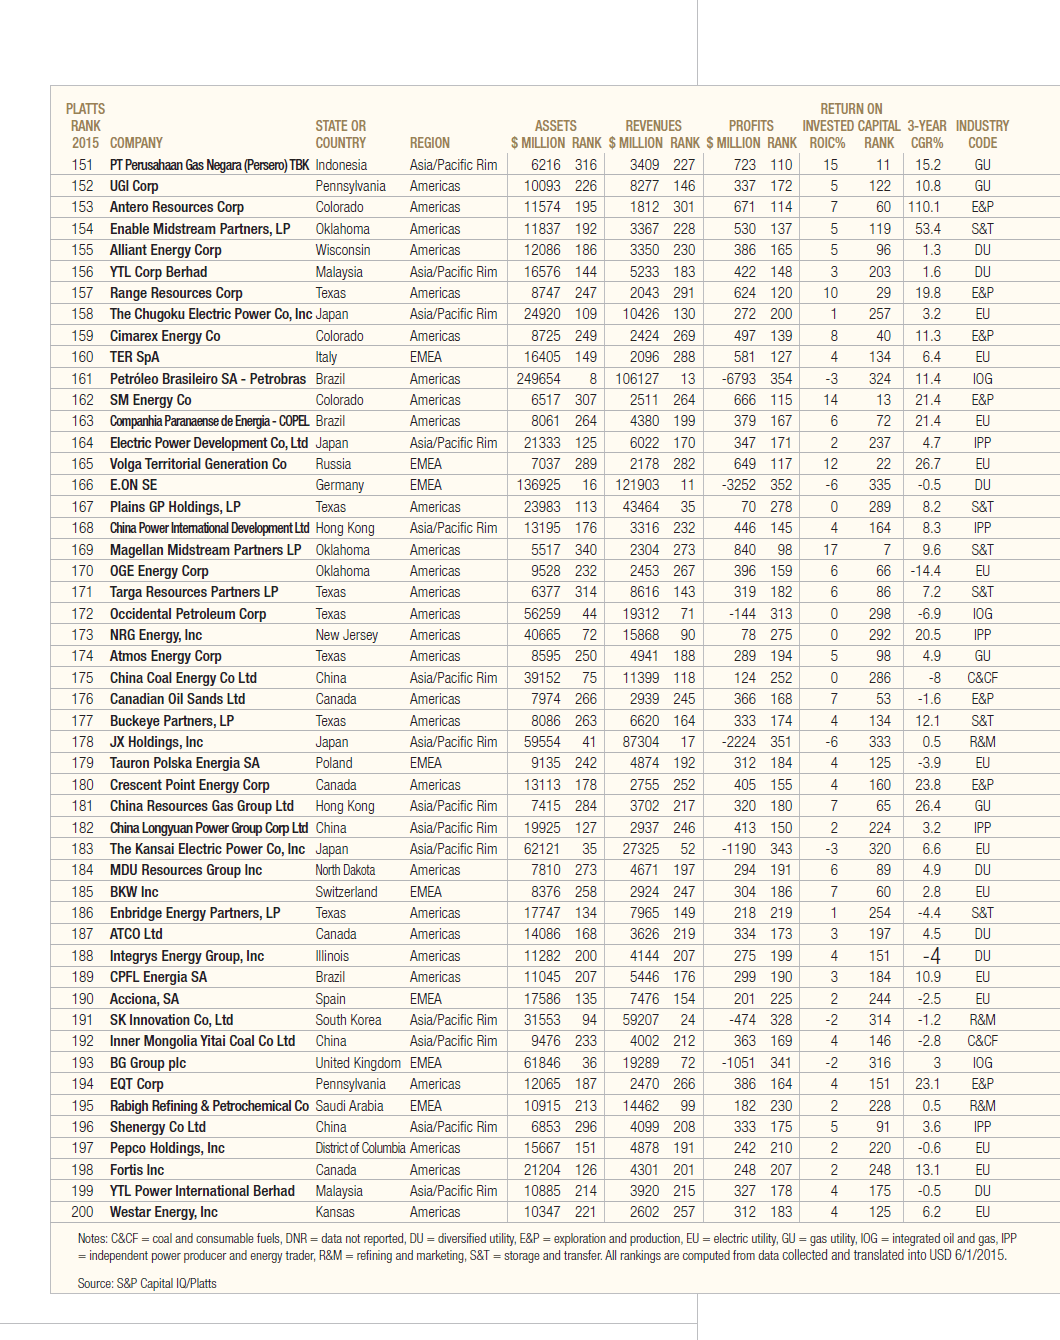 Platts Top 250 Energy Companies for 2015-Page 4